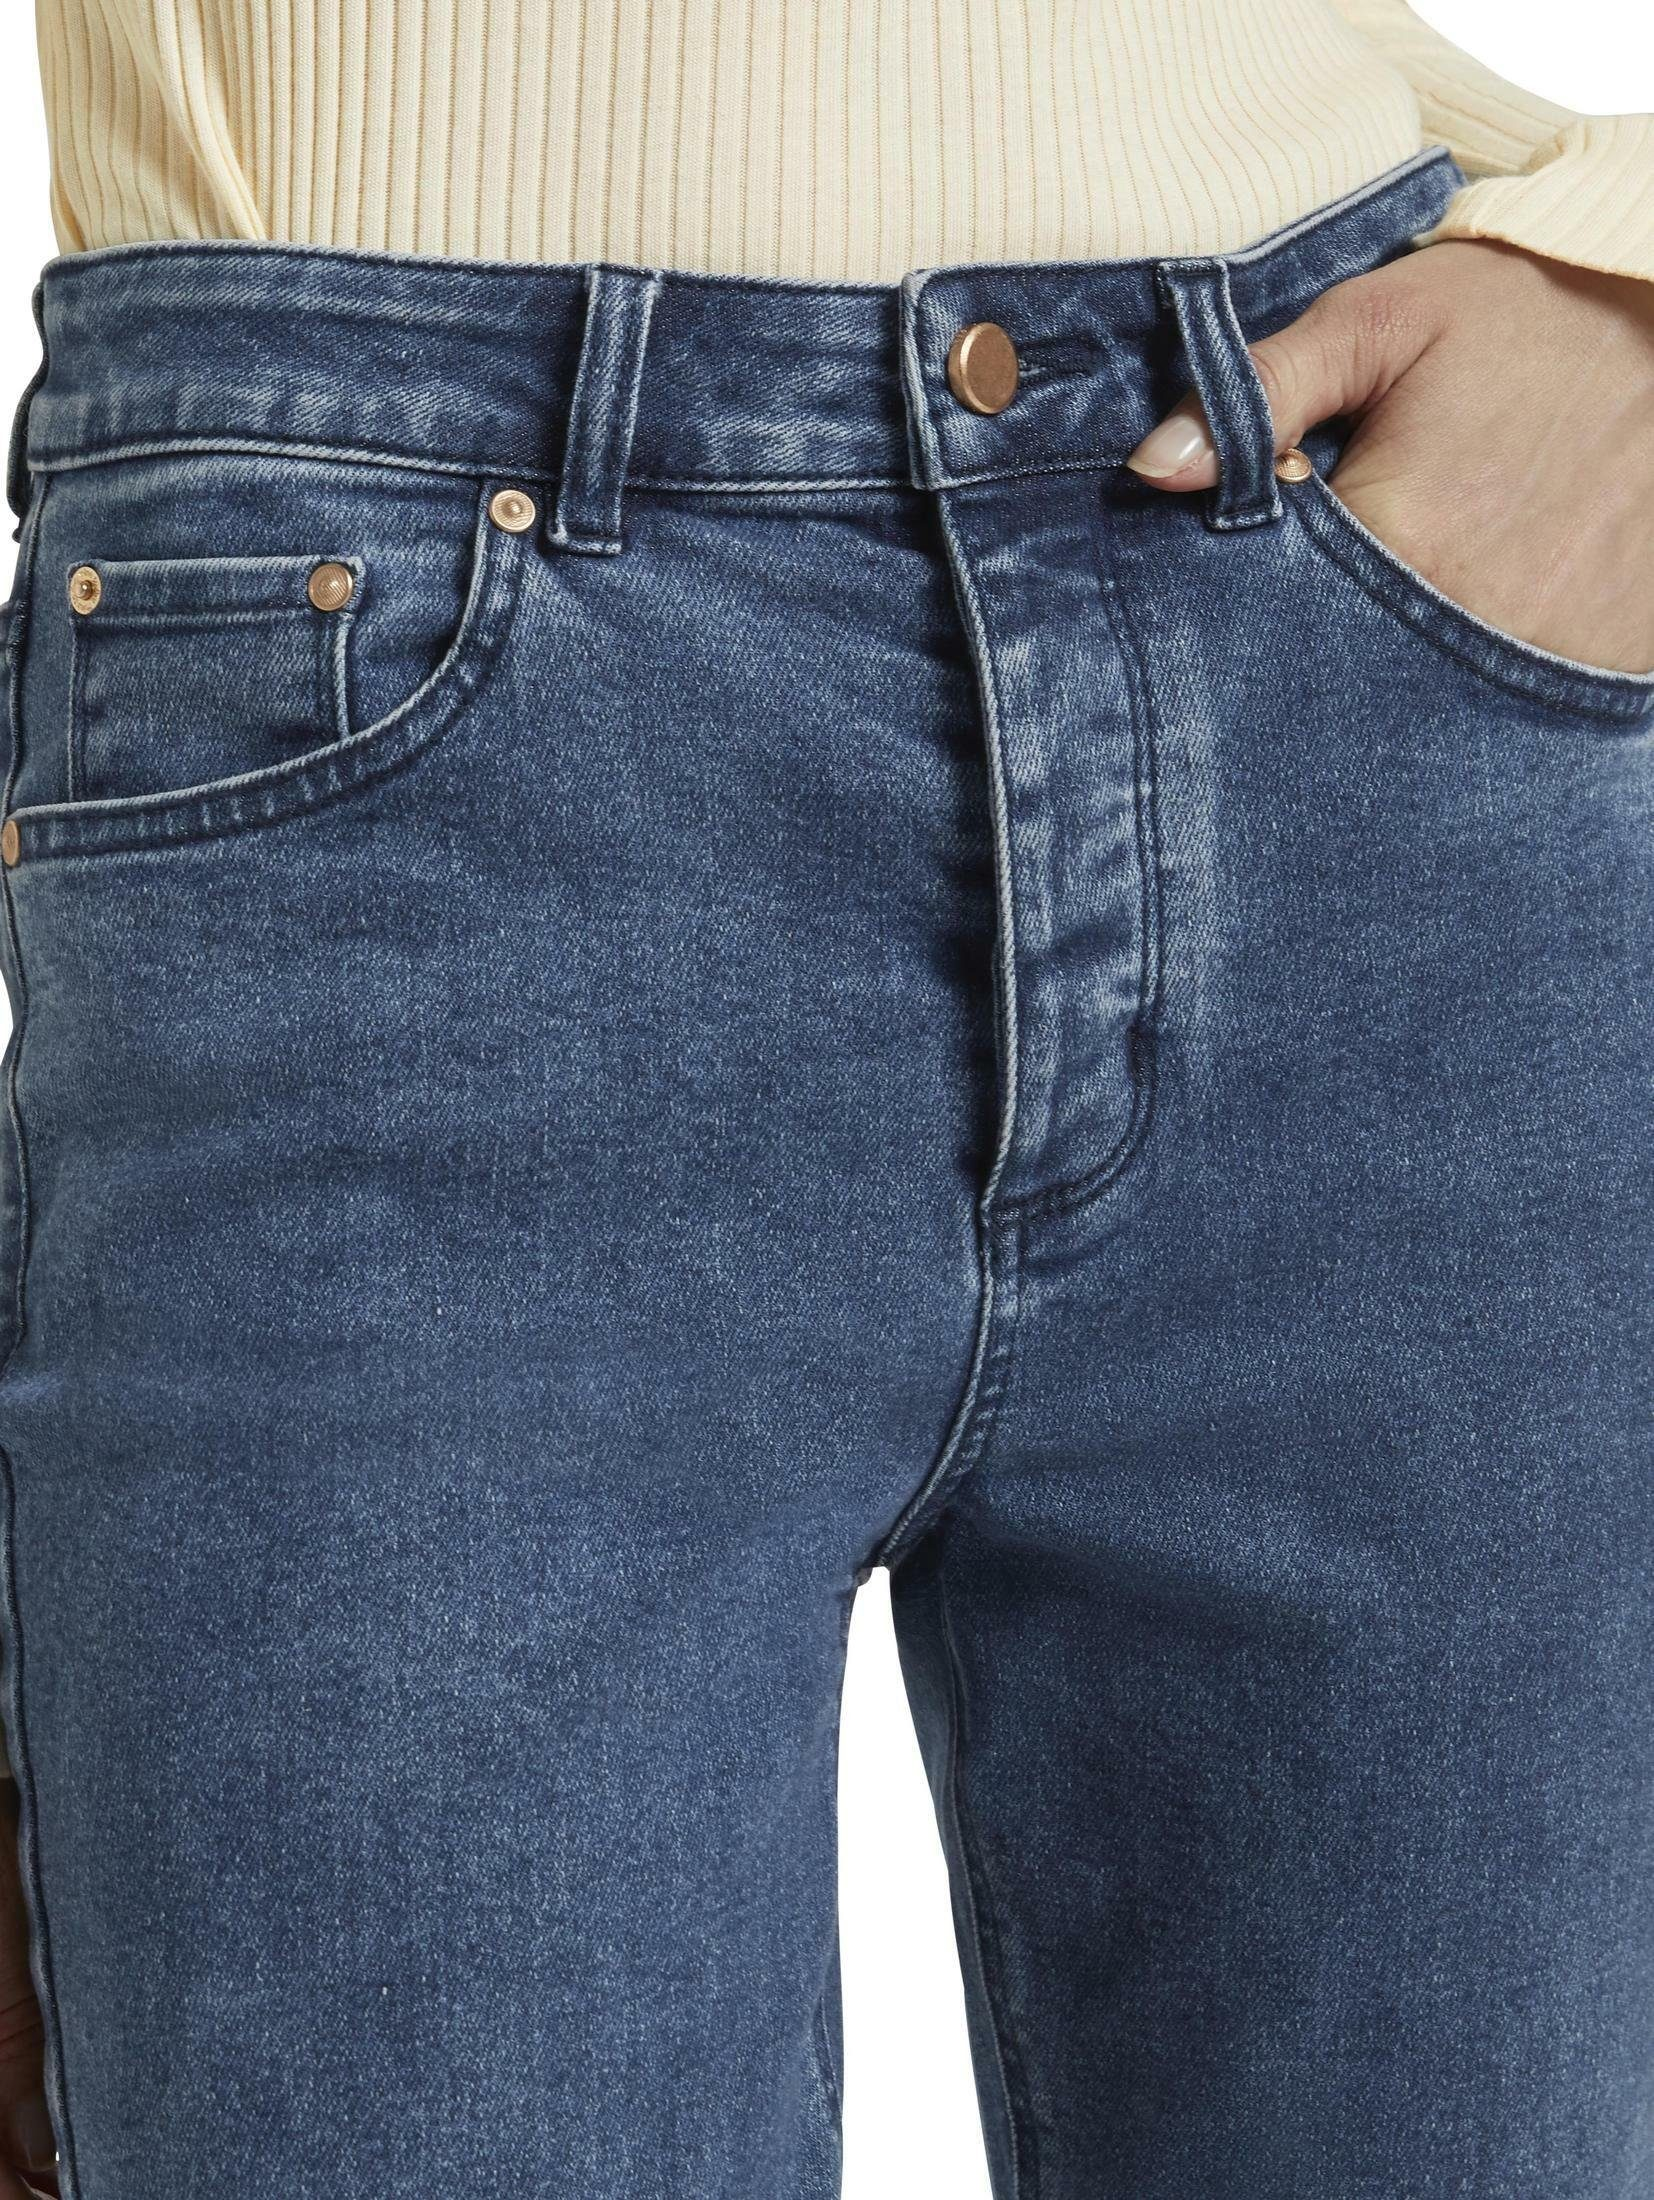 Tom Tailor Mine To Five Skinny-fit-jeans Emma Straight Jeans Mit Offenem Saum Online Kaufen